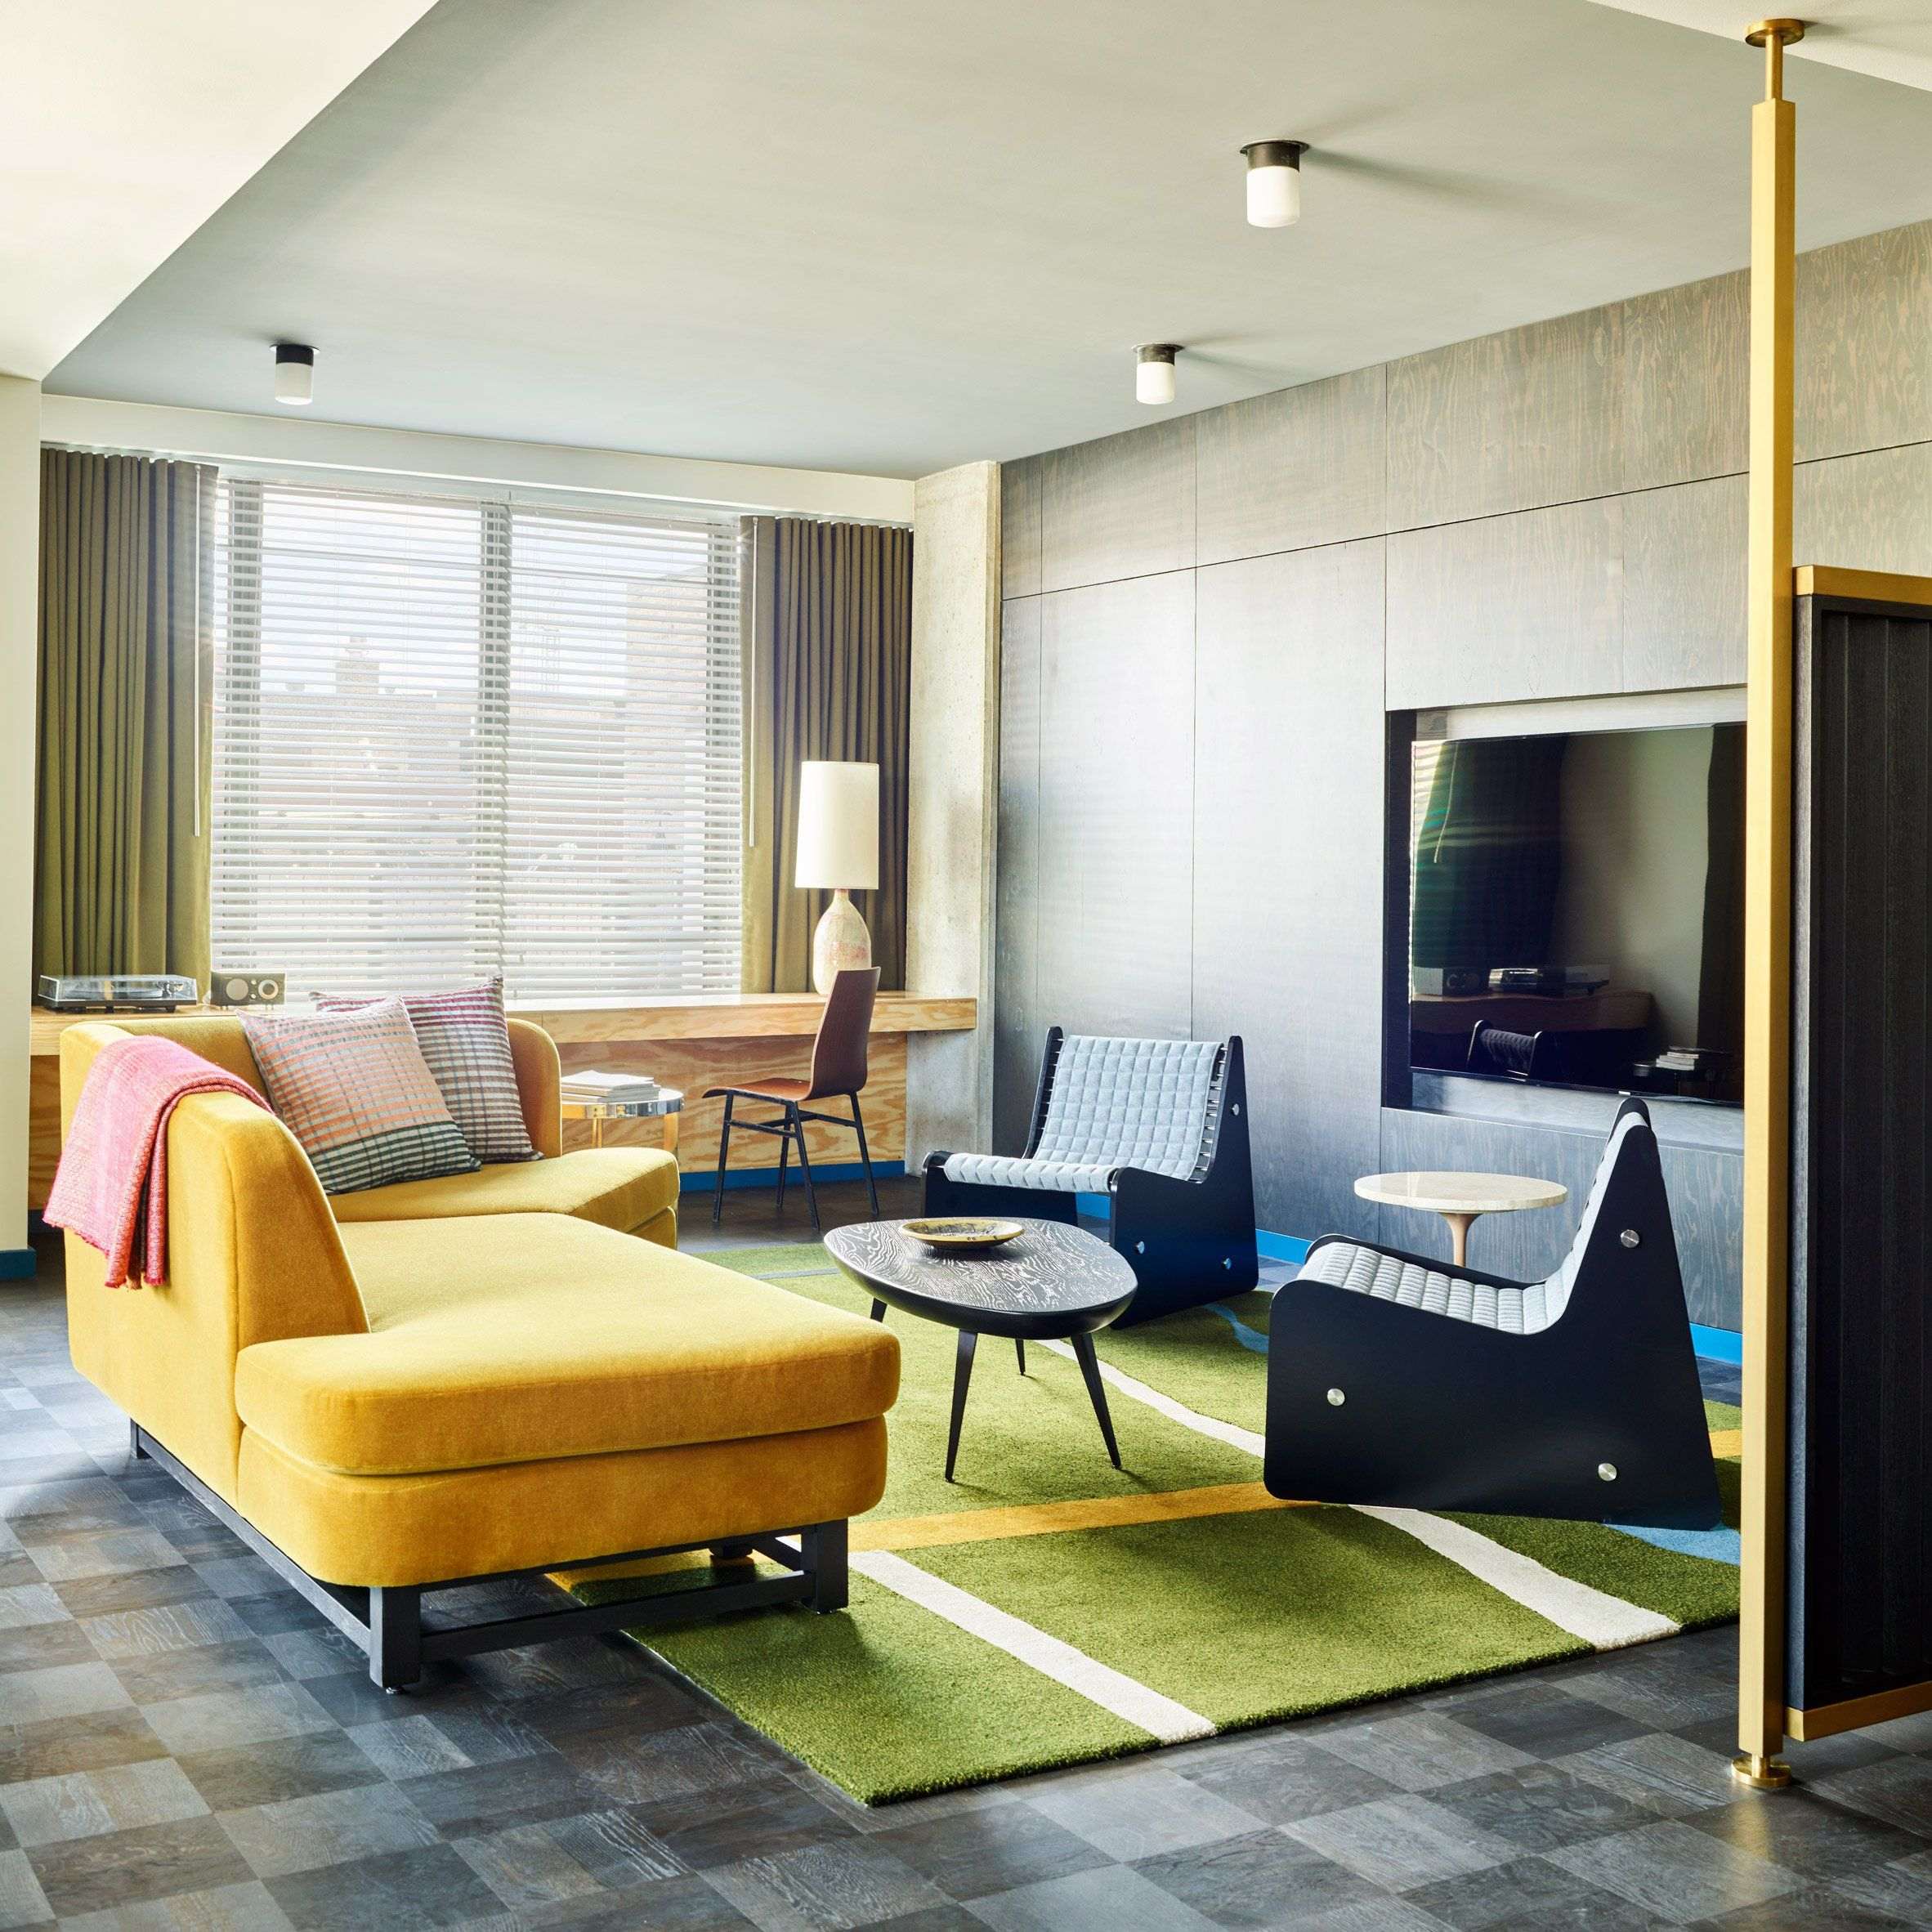 Los angeles studio commune design has used vibrant modernist furnishings to decorate the ace hotel chicago as a nod to the citys architectural history